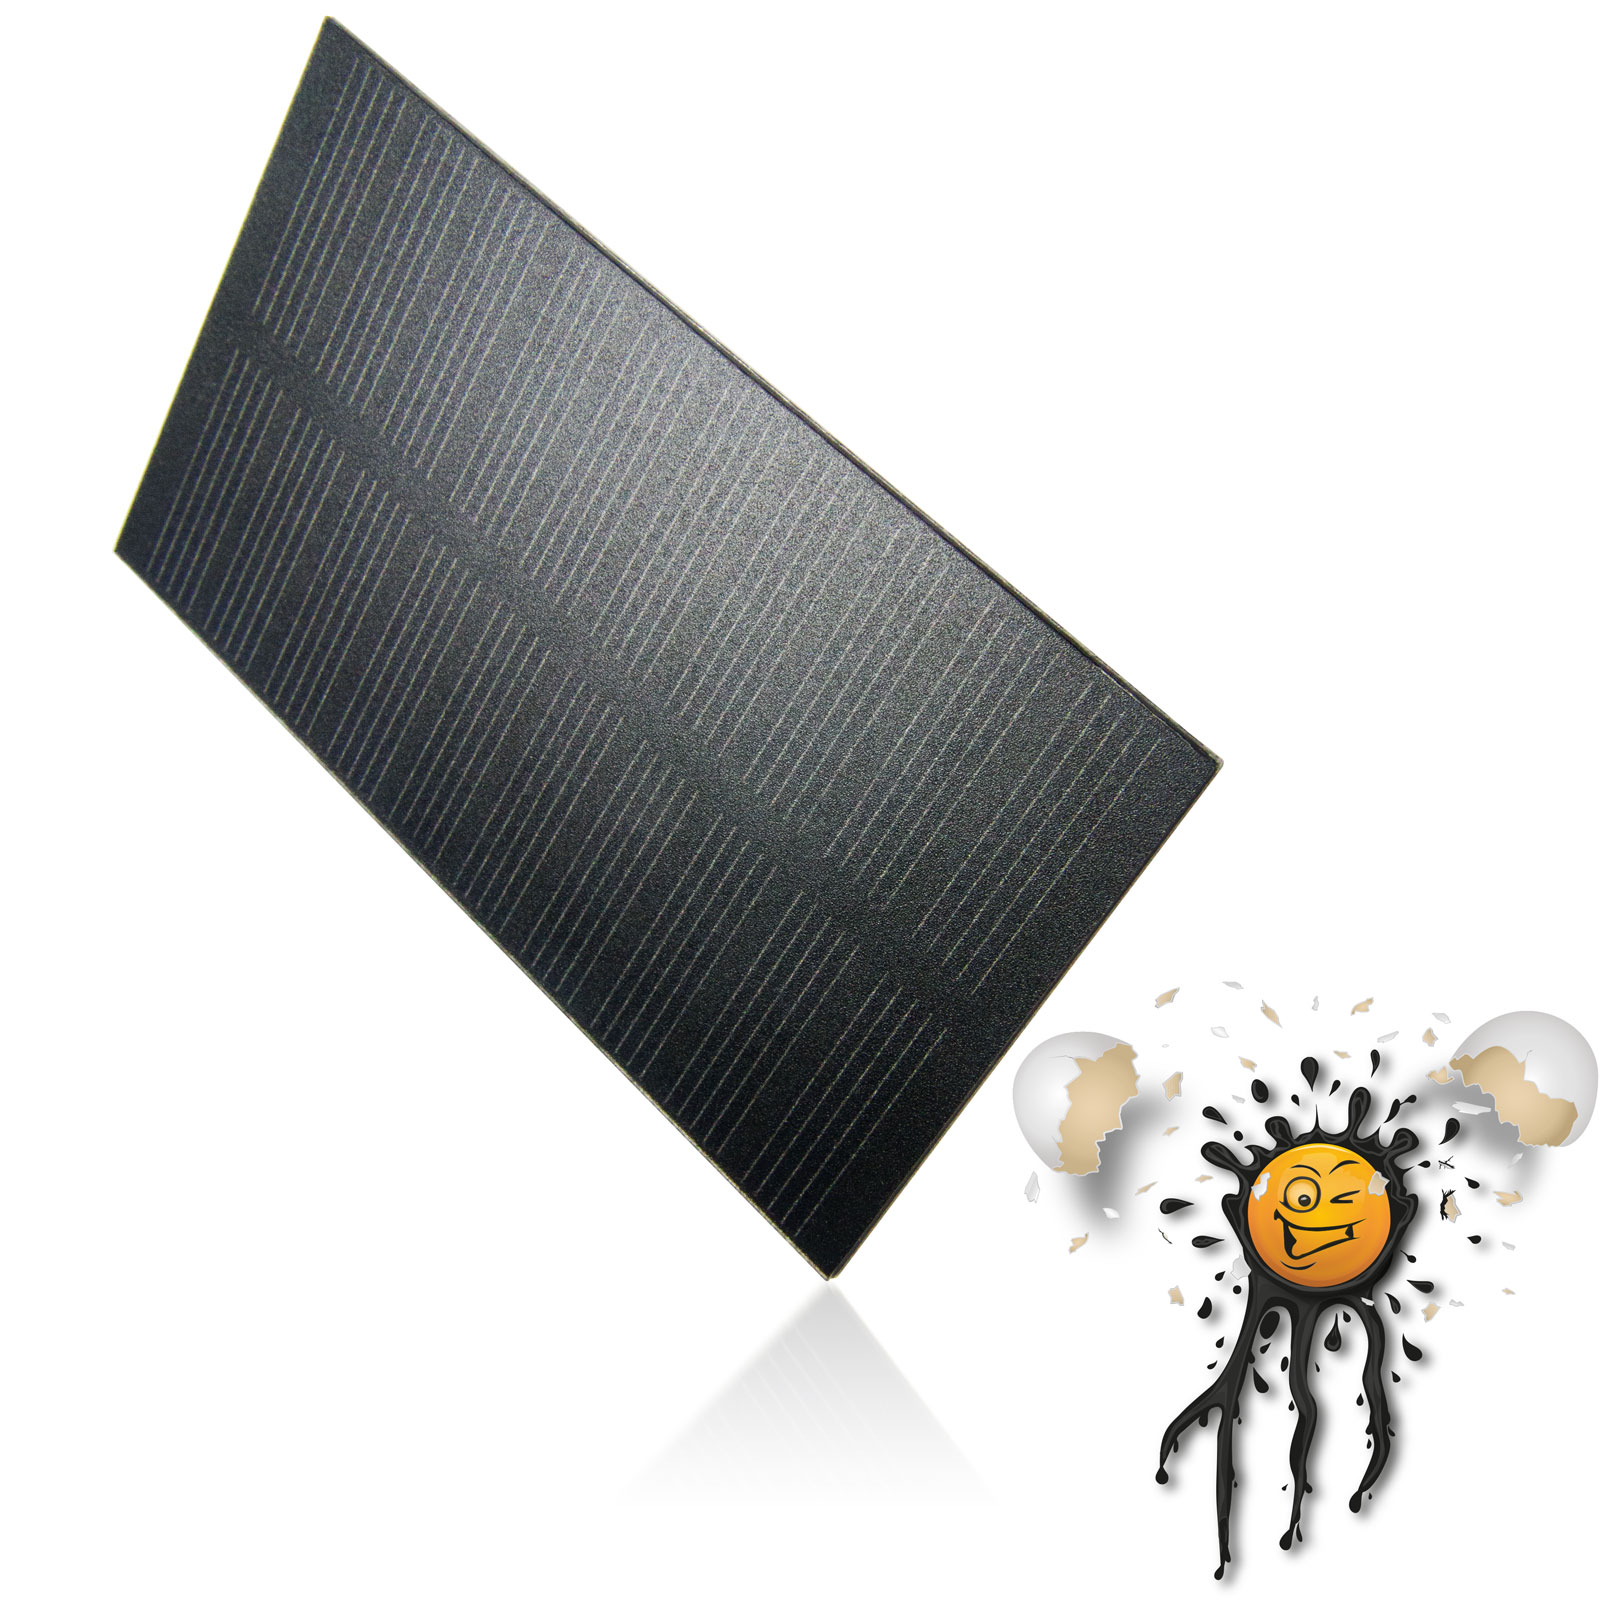 5V 1W Photovoltaic Panel Charger